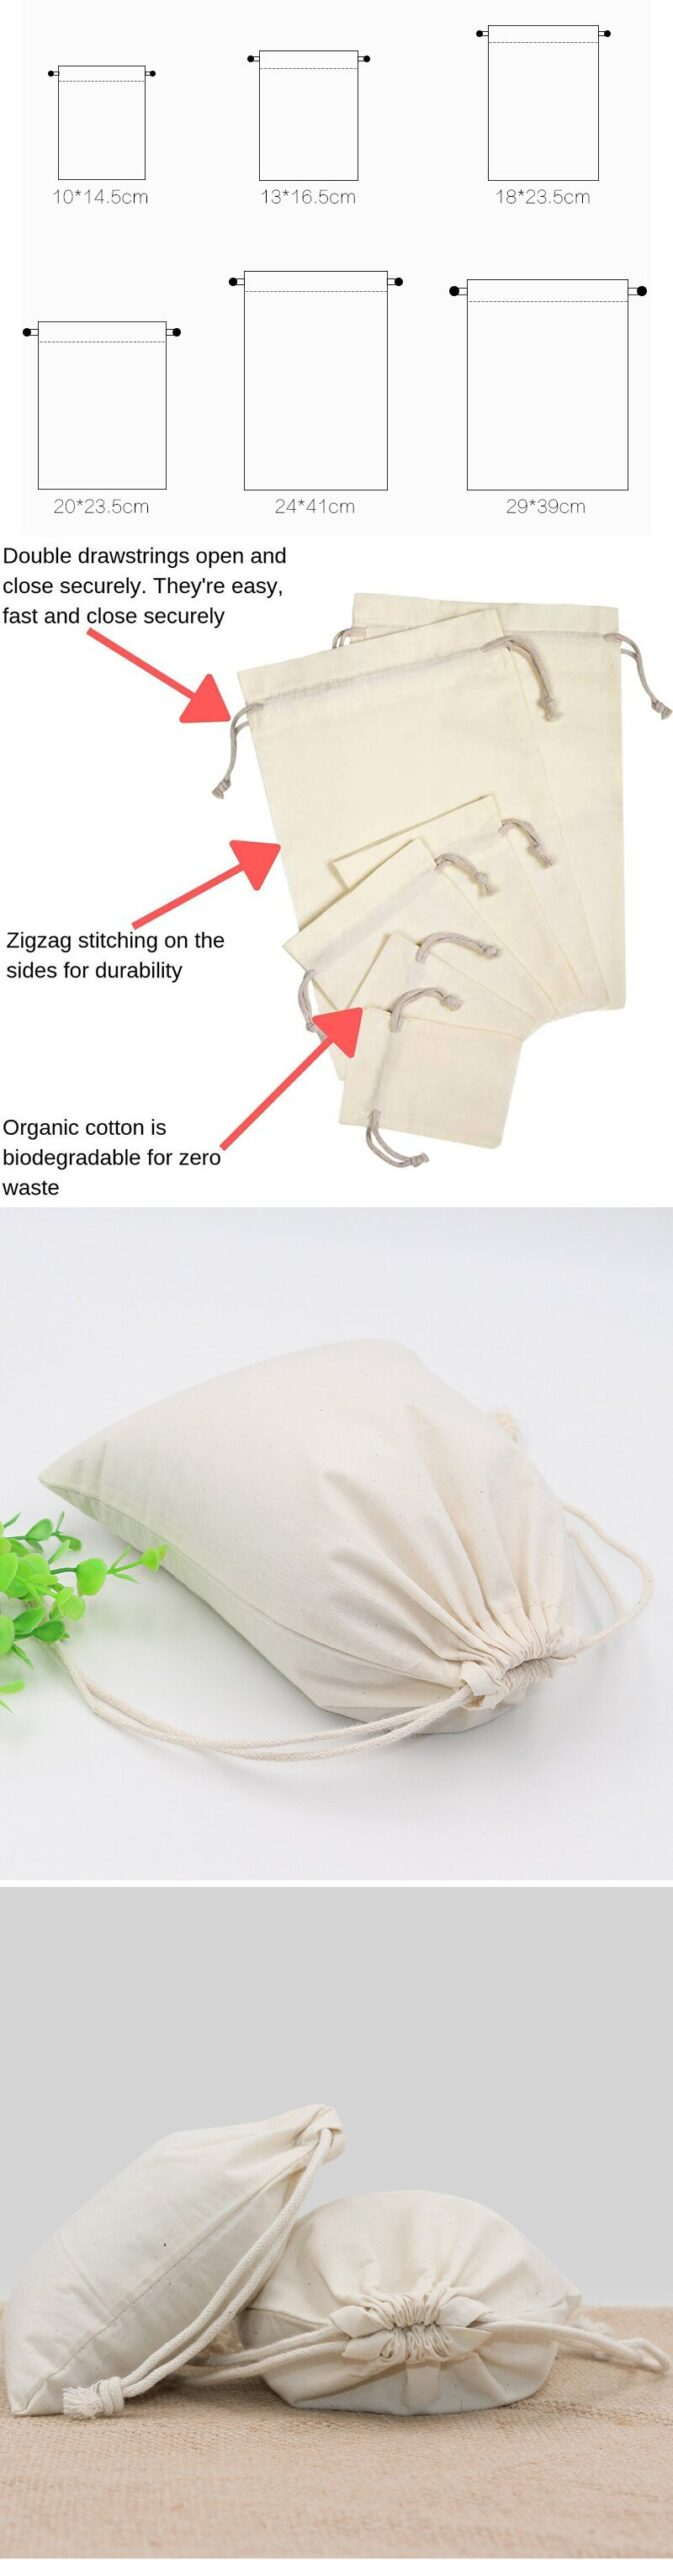 Grocery Store Bag - Eco friendly